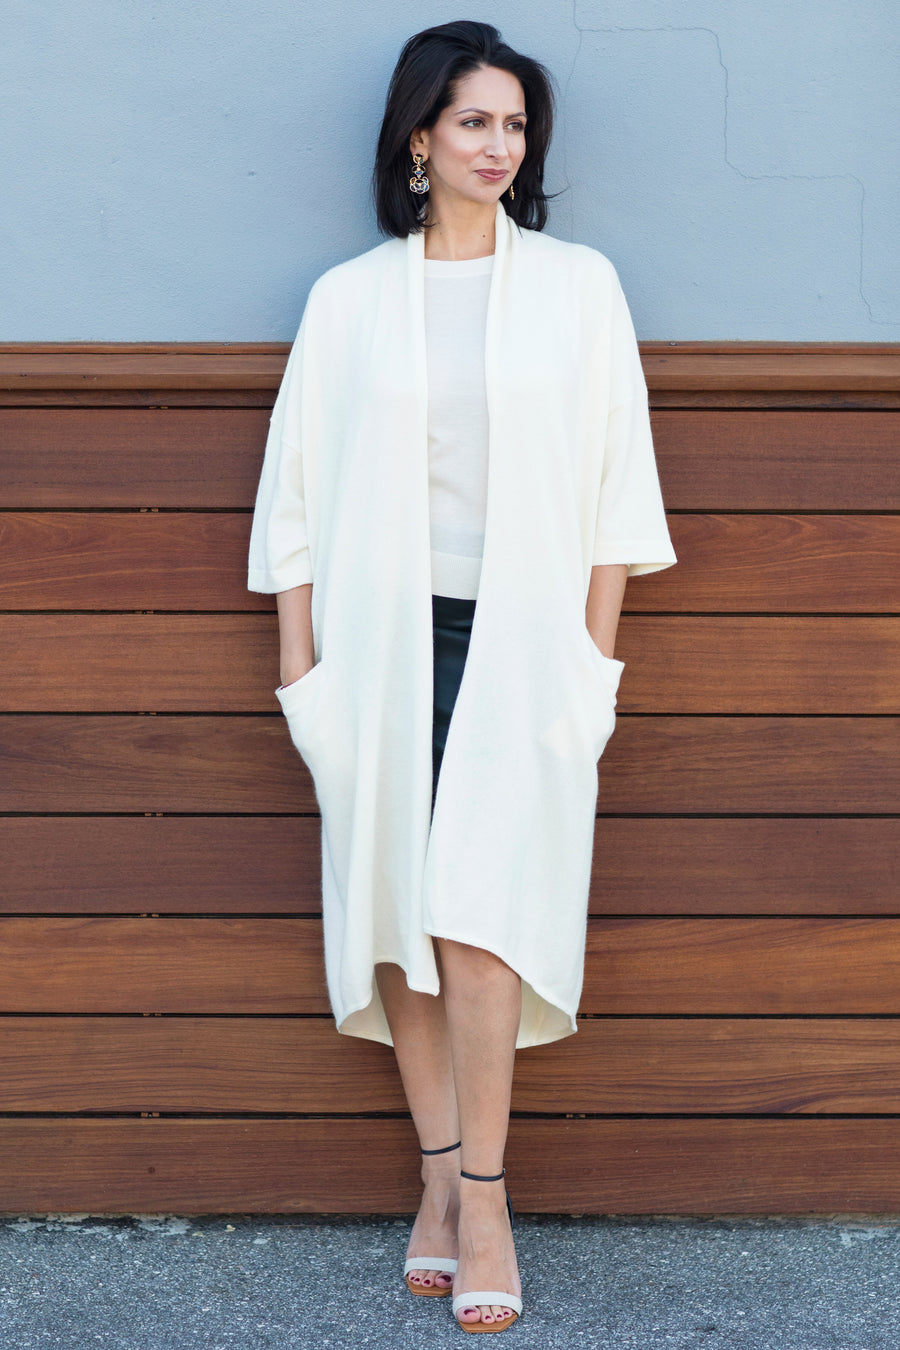 pine cashmere celine women's loose fit 100% pure organic cashmere cardigan coat in white